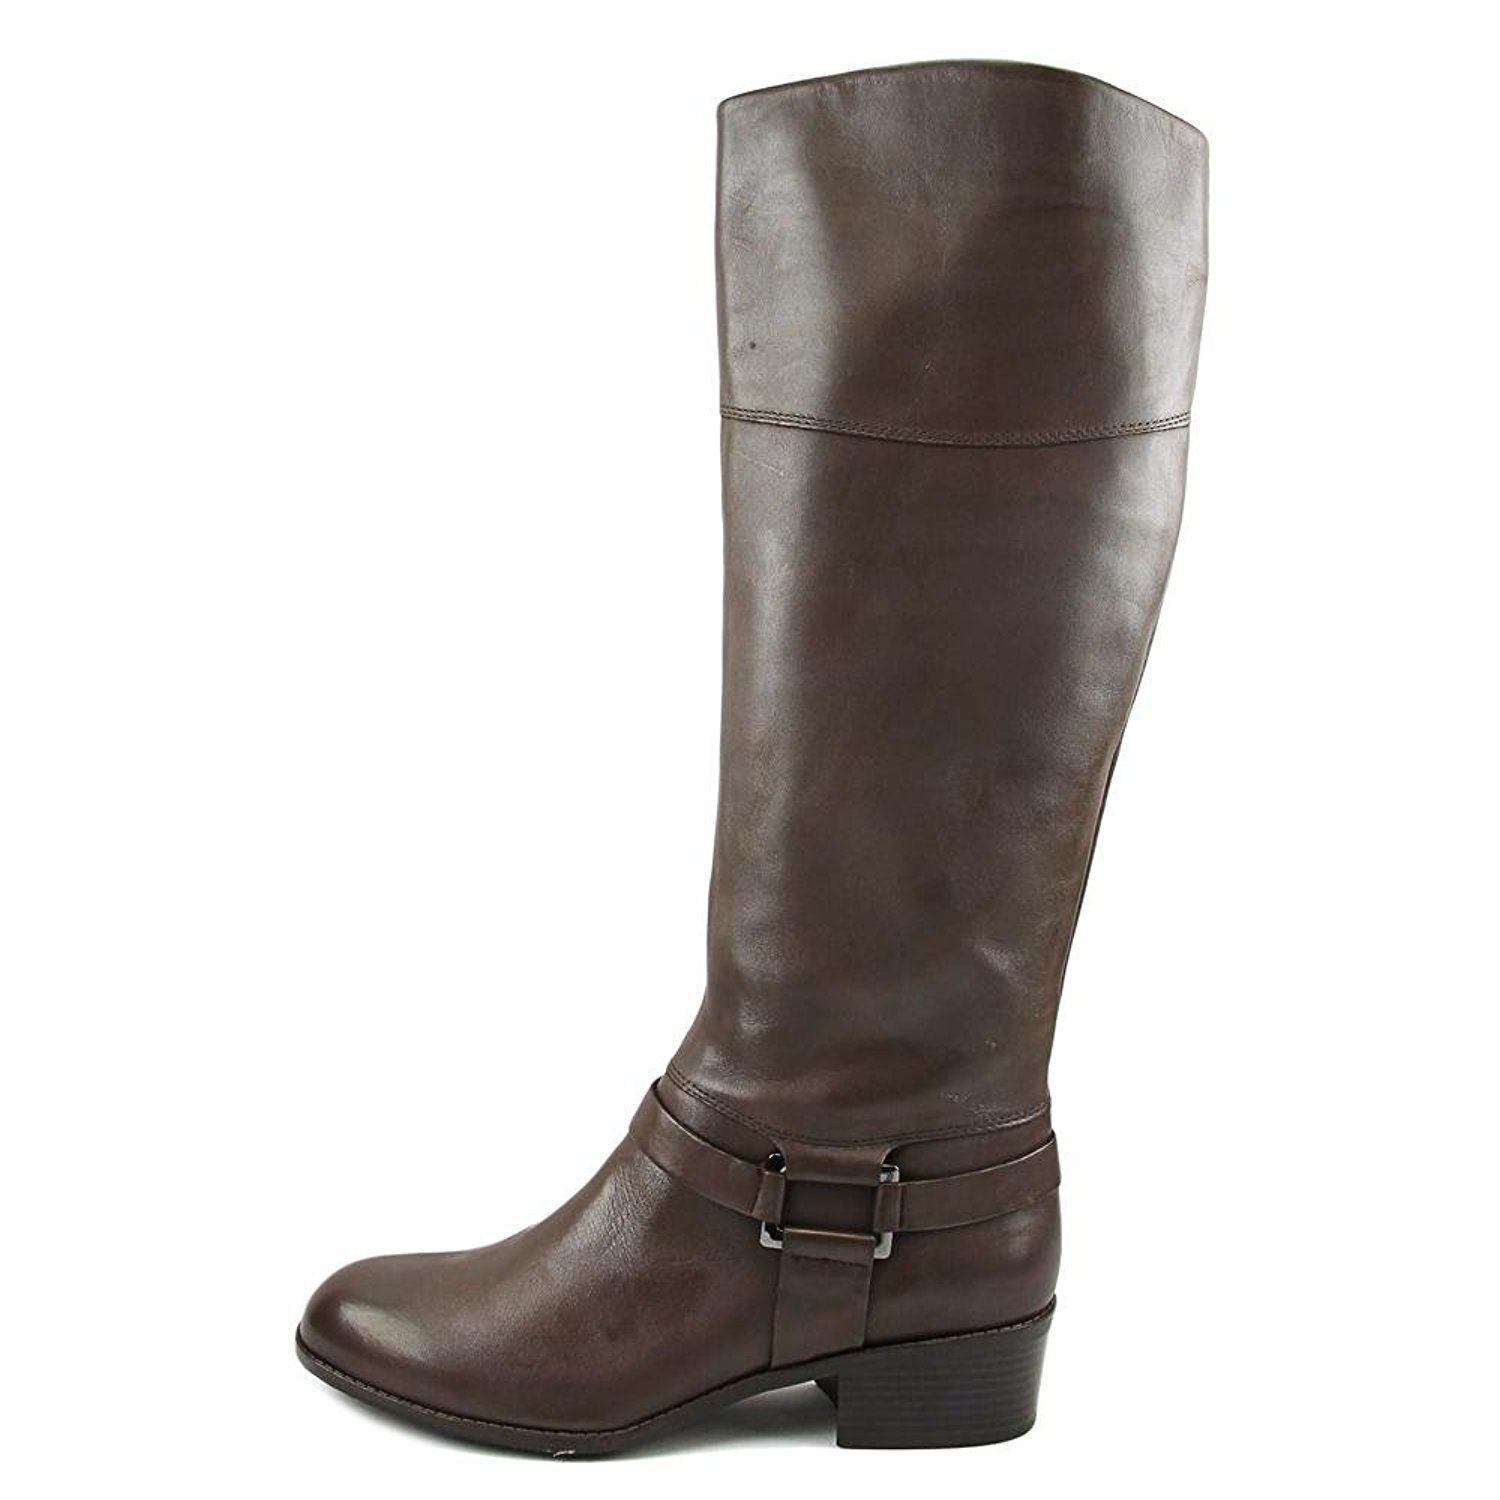 ALFINI Wouomo Biliee KneeHigh Leather Equestrian avvio DARK ROAST, Dimensione 5&5.5 W